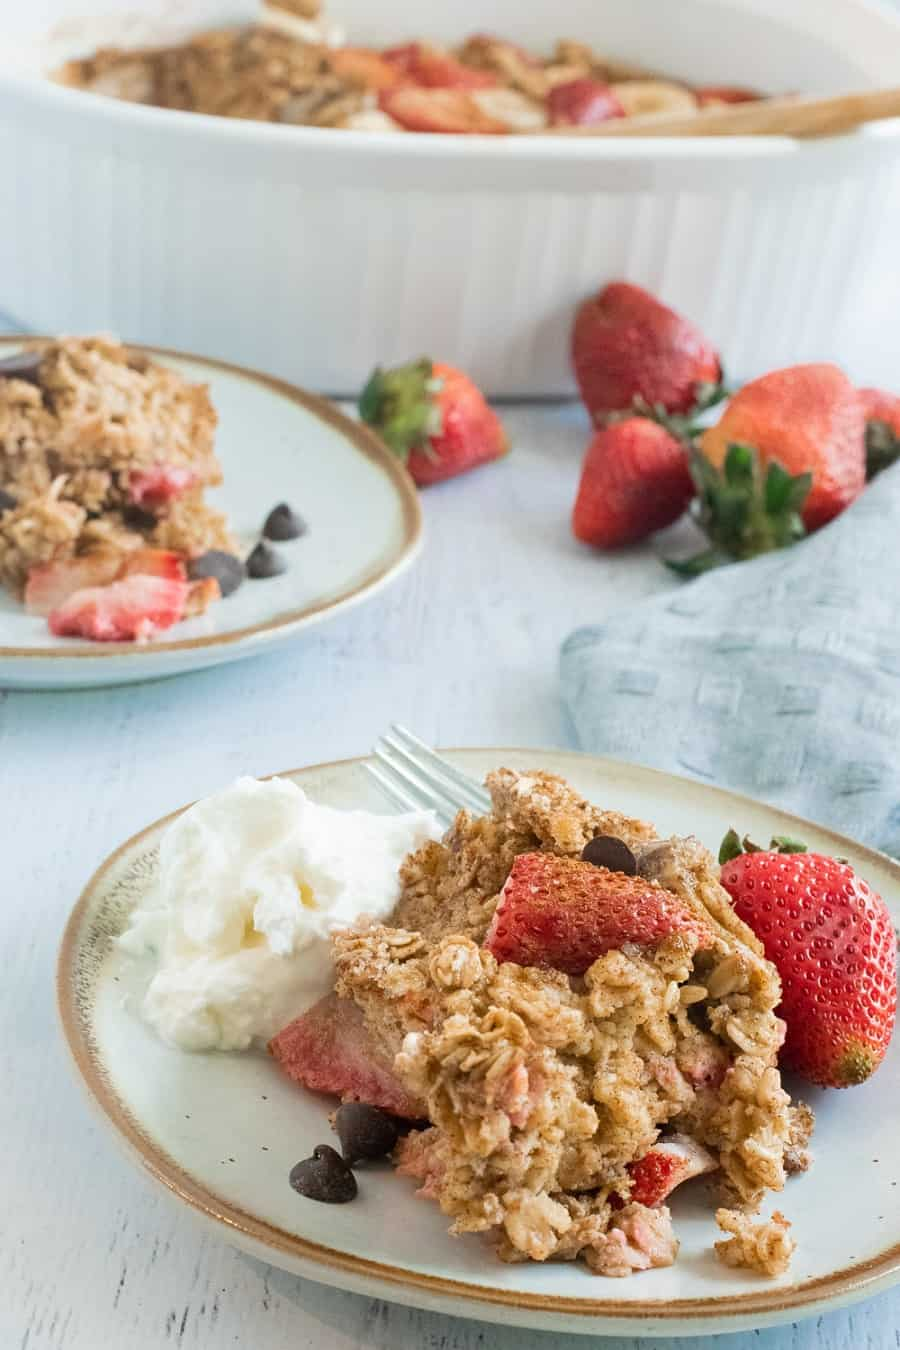 plate of baked oatmeal with strawberries and yogurt